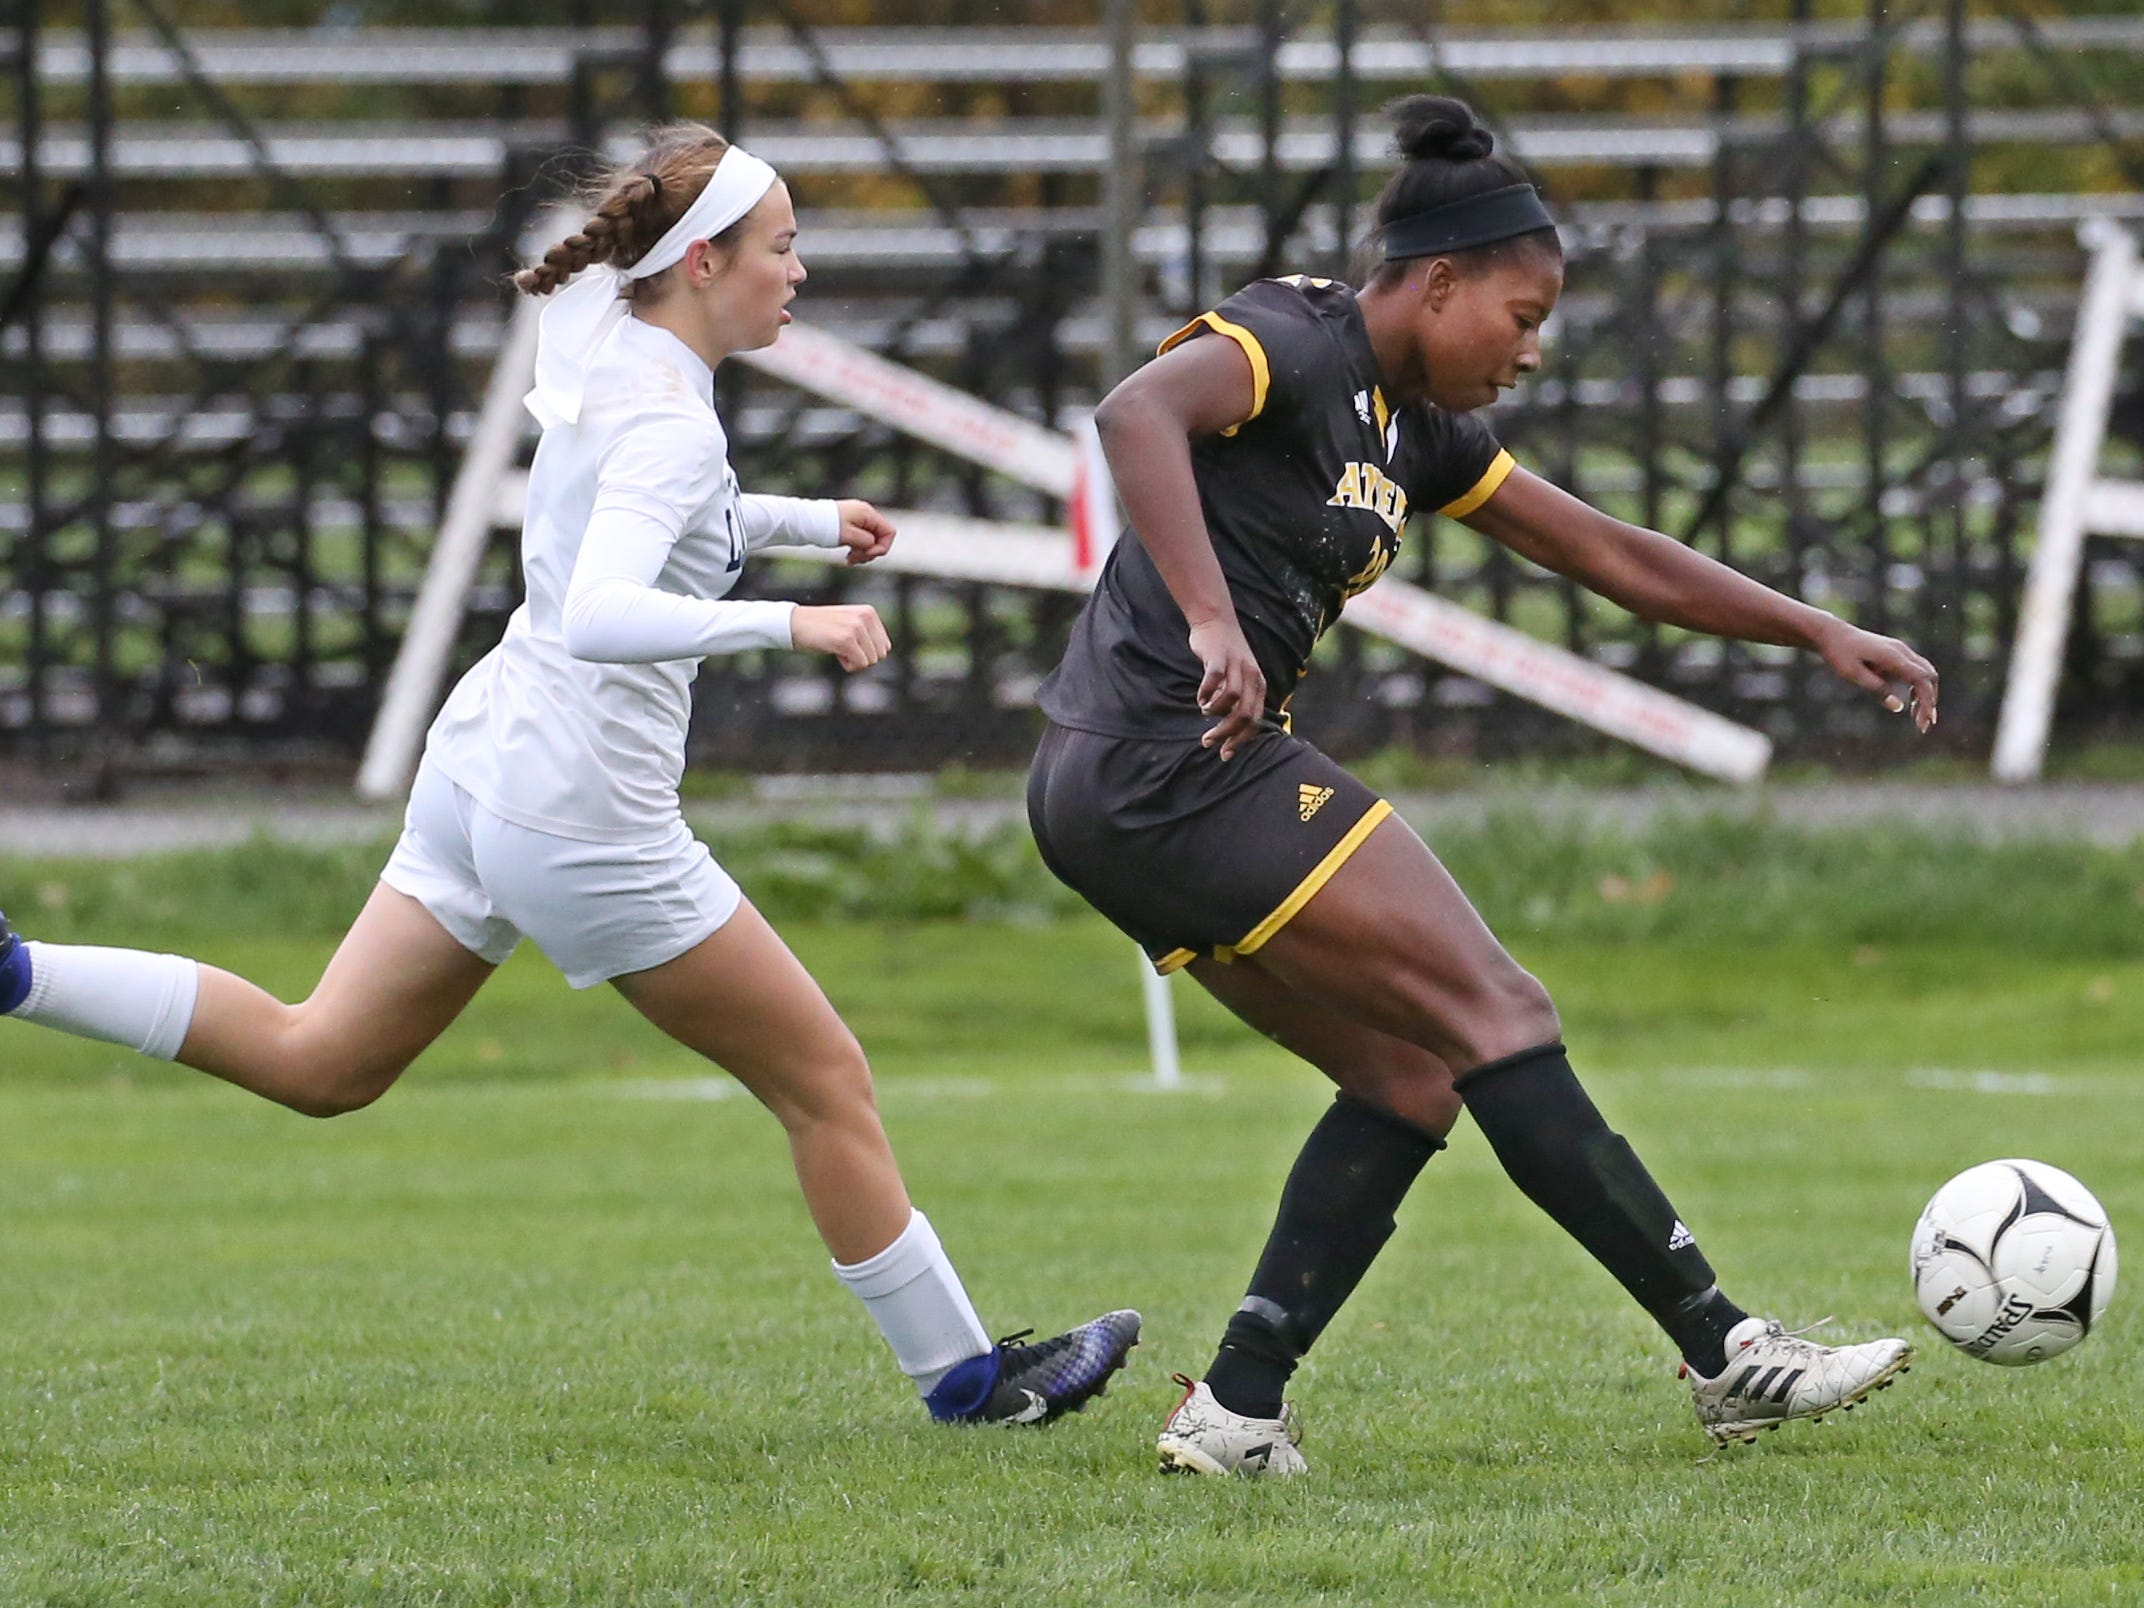 Athena's Waniya Hudson, right, rips her second goal of the game into the net as Eastridge's Jayna Rosati presses.